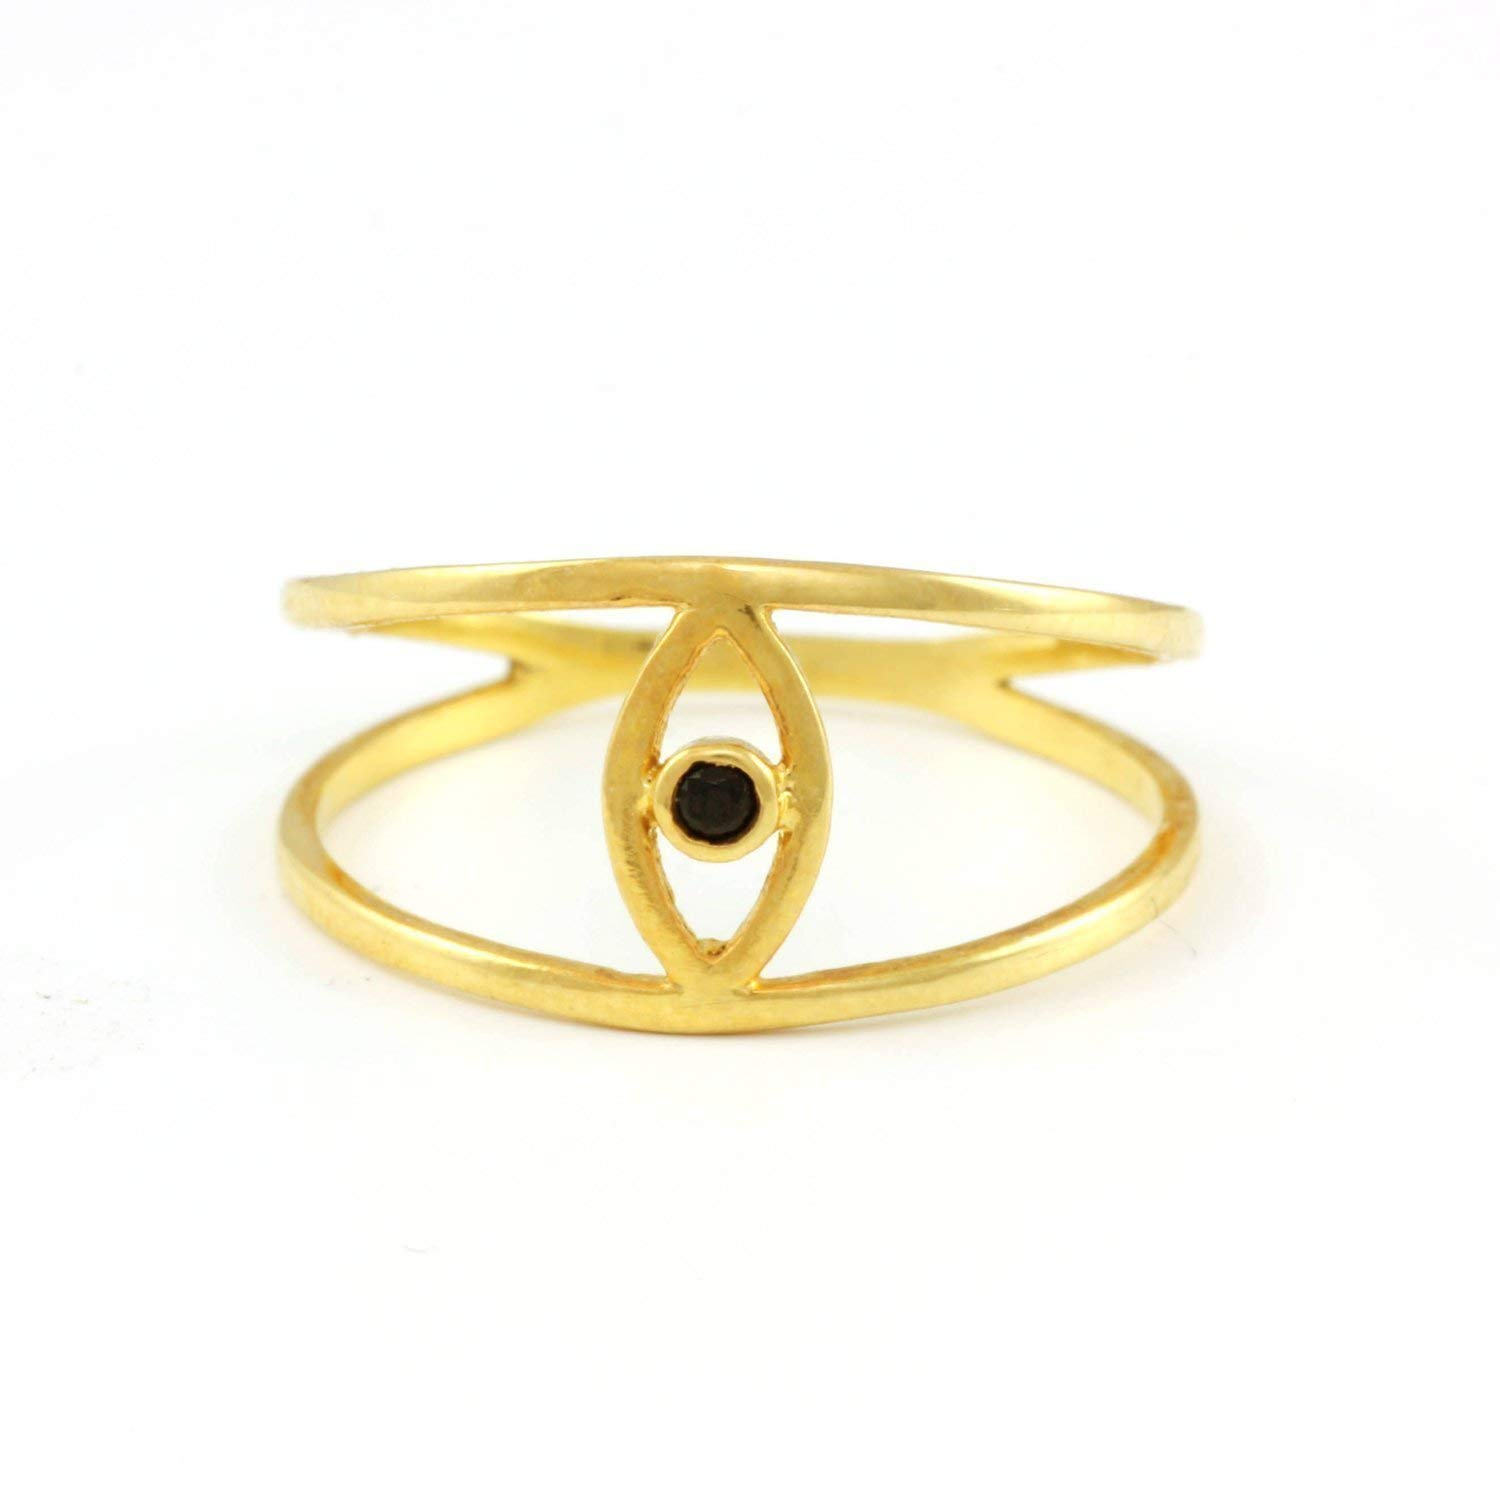 Evil eye double gold ring 14K bezel black or white diamond double band dainty minimalist protection special design for women birthday graduation gift AR032